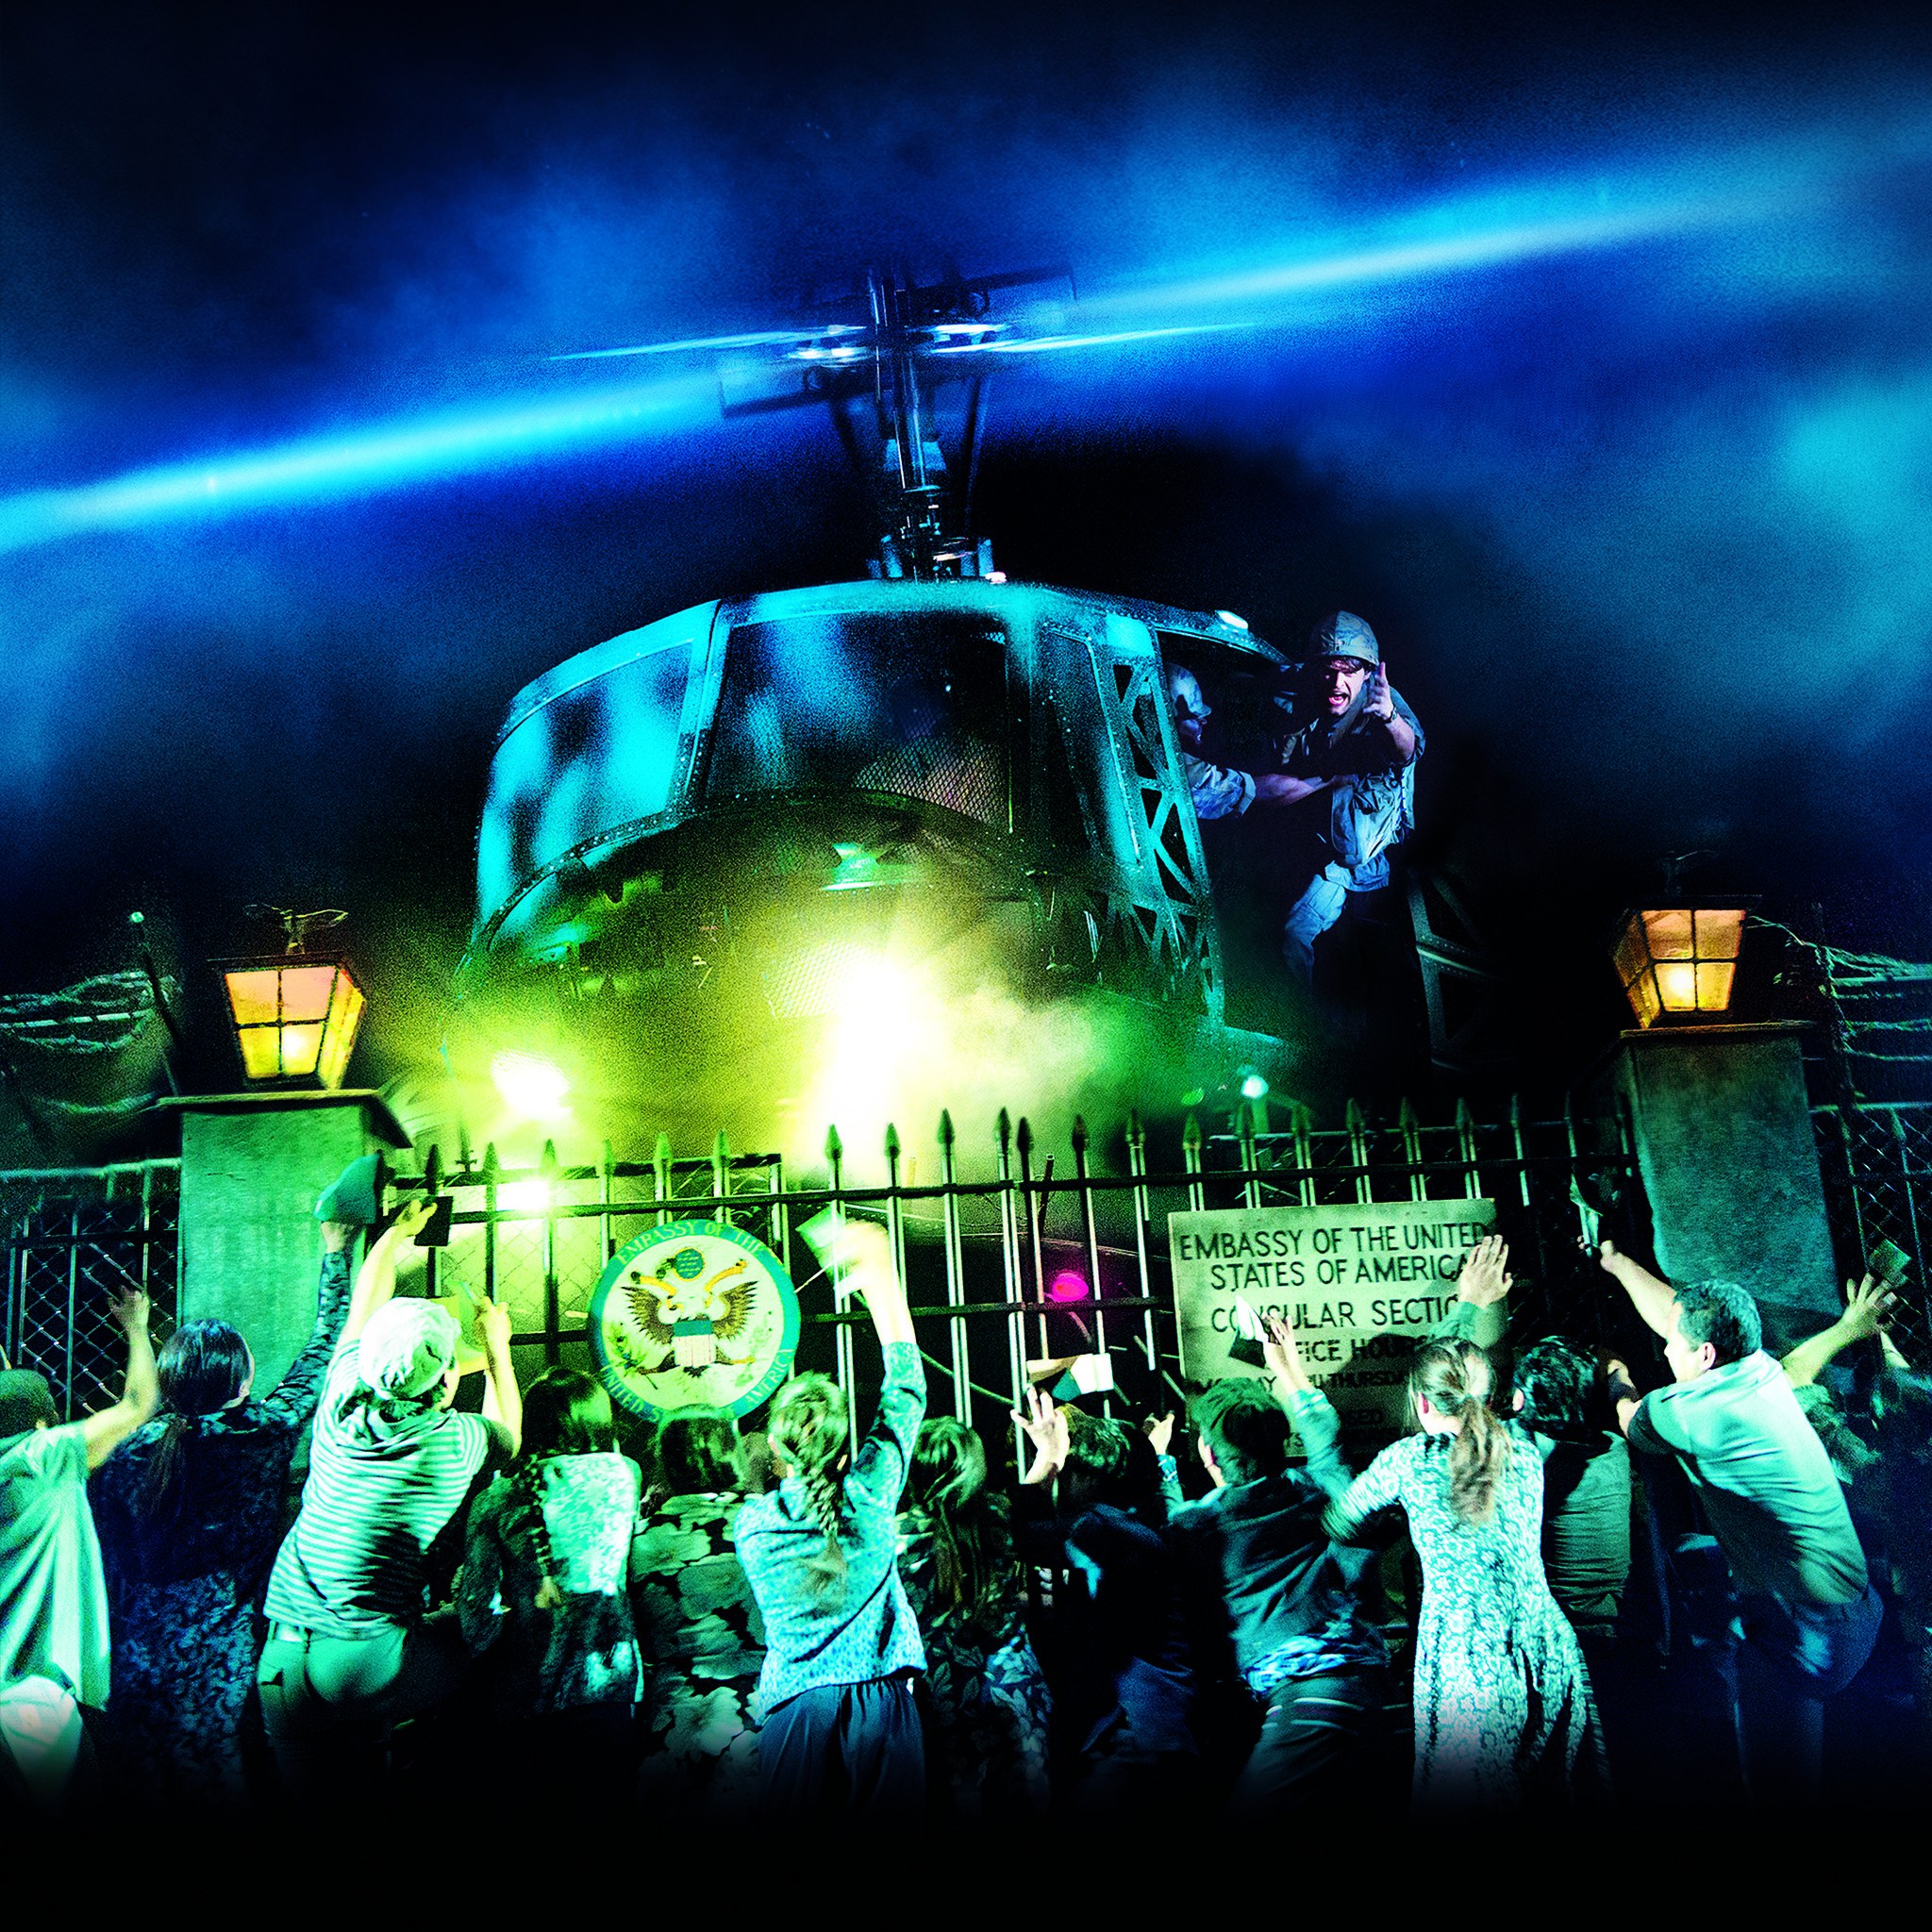 'Miss Saigon' will open on Broadway, followed by national tour with Chicago stop